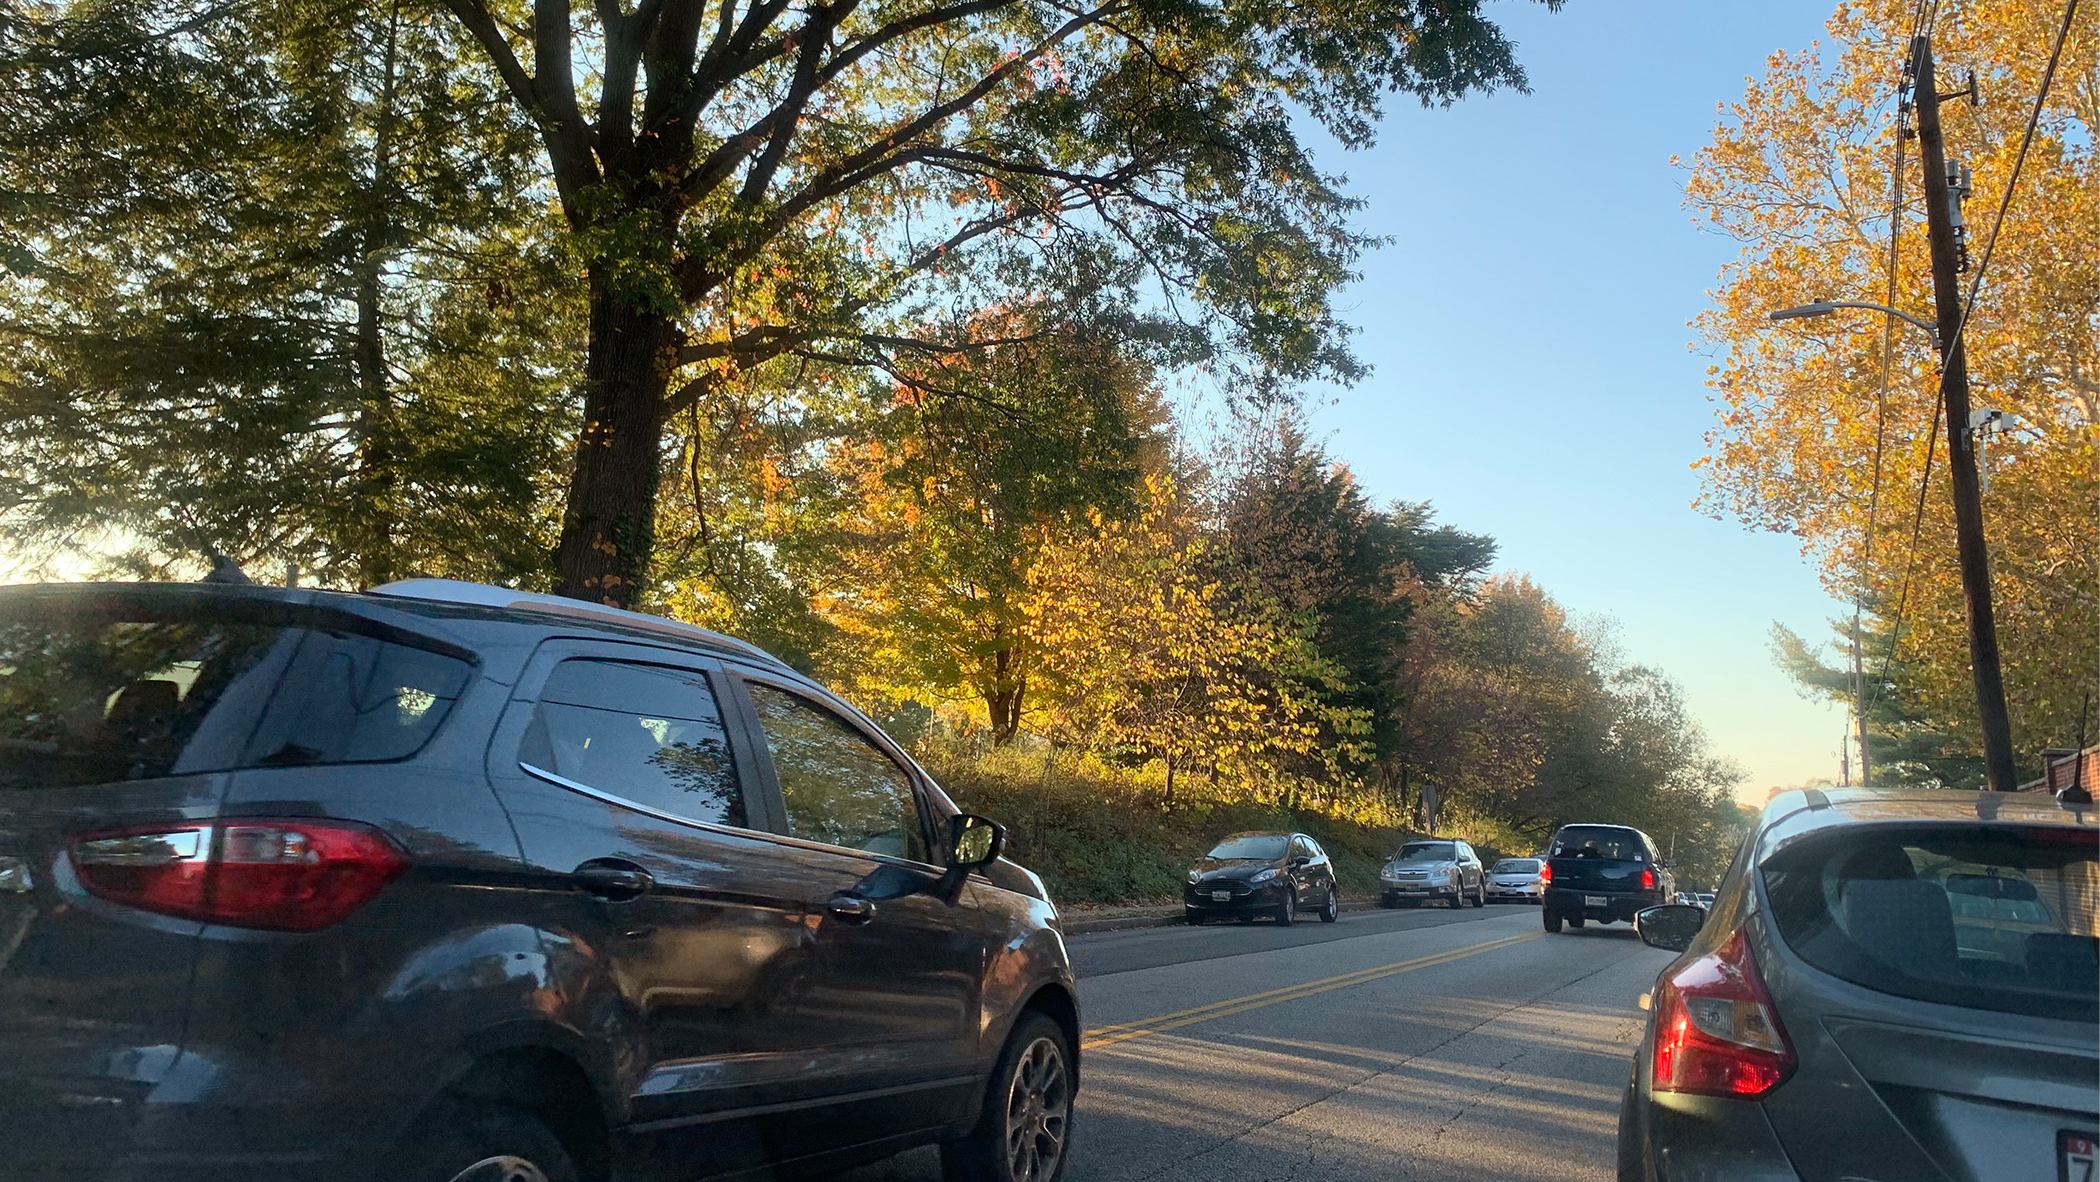 When motorists take the road in Maryland, they're subjected to surveillance and traffic data collection measures the state utilizes. (Eric Myers/Capital News Service)